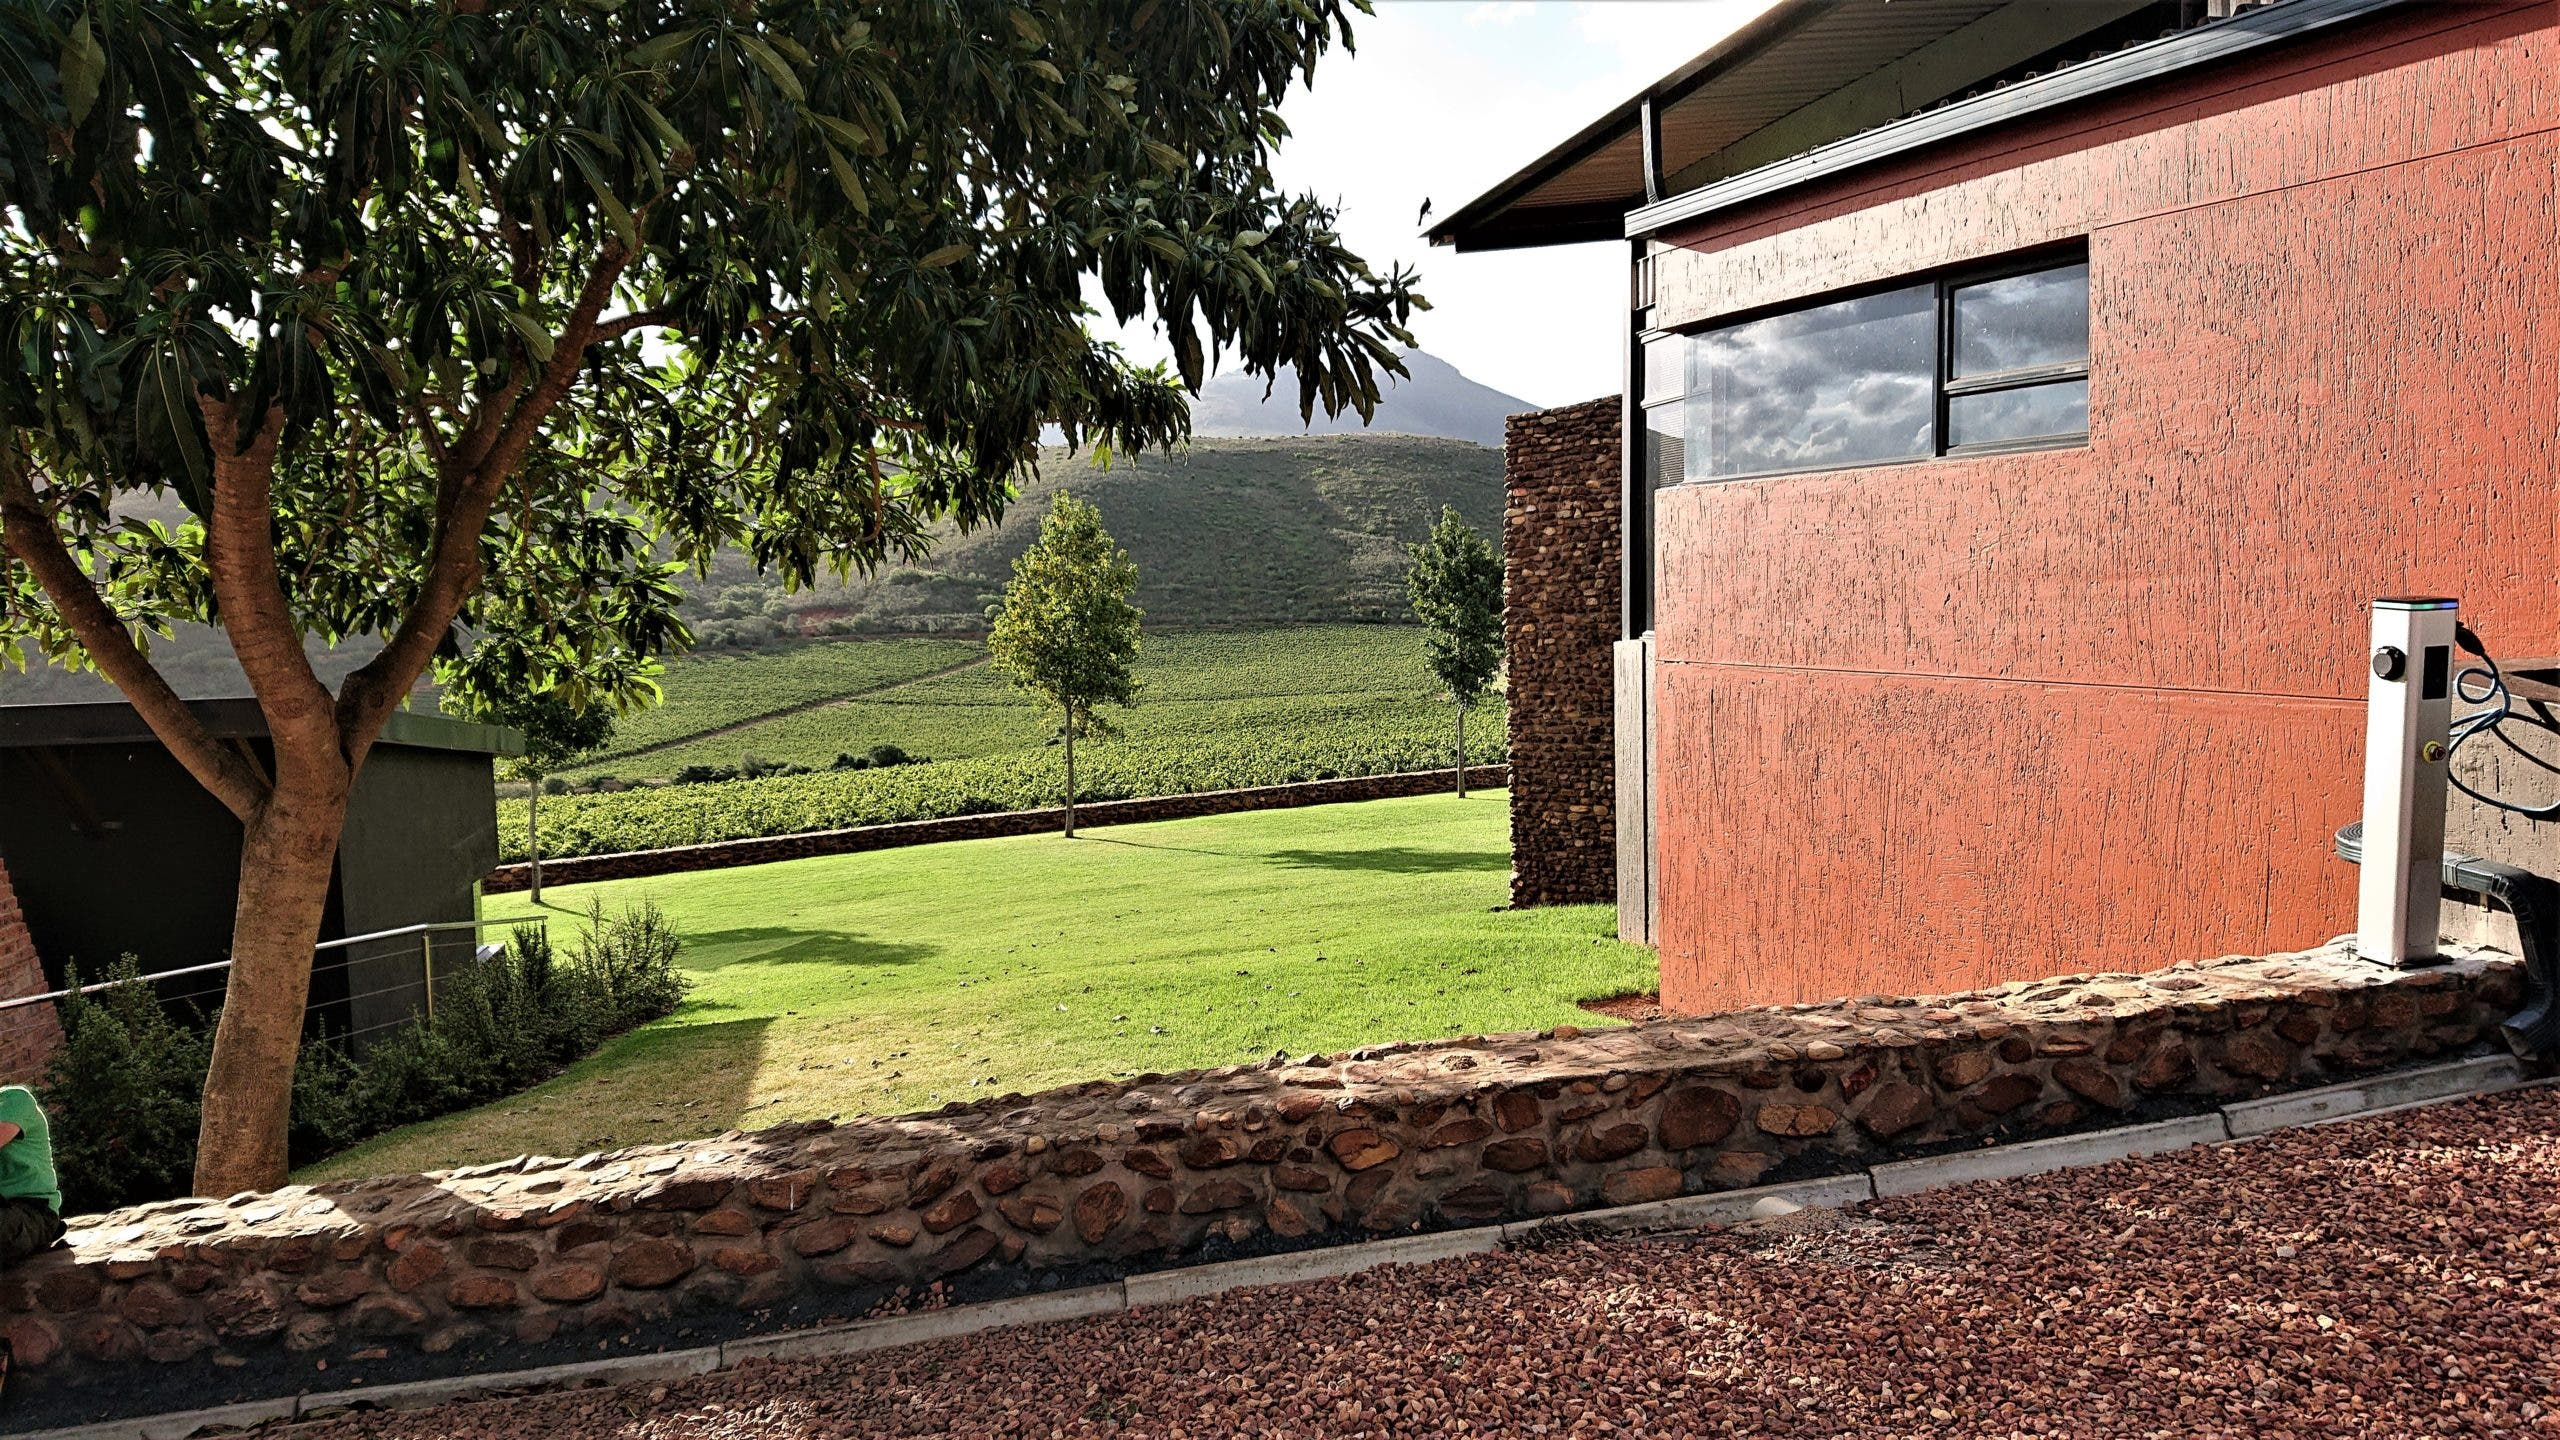 An evCrowdRoute Charging Station (22 kW AC) at Jakkalsvlei Wine Farm in Herbertsdale (Courtesy of evCrowdRoute)